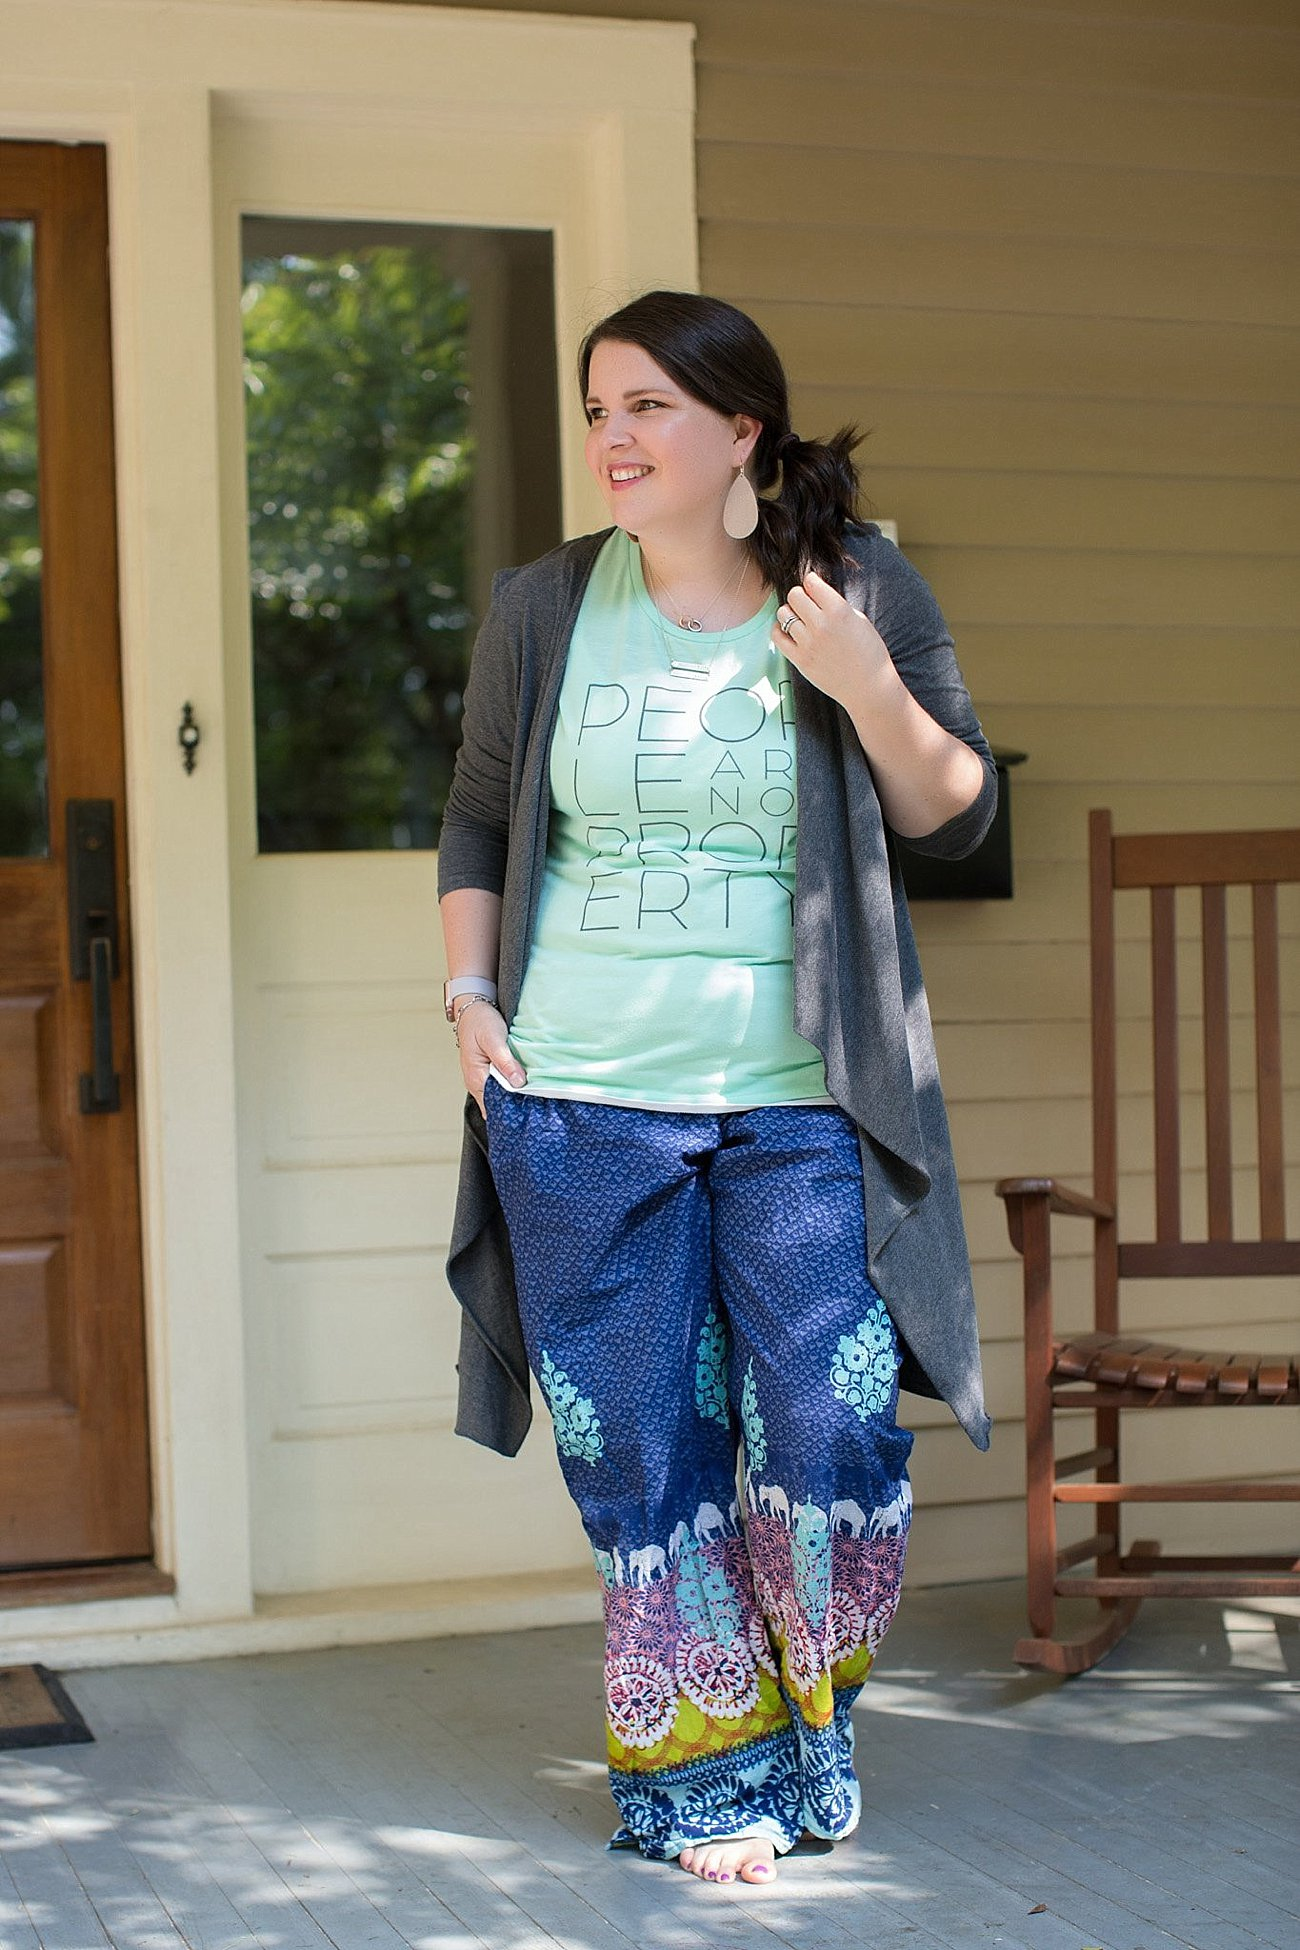 Sudara Goods Punjammmies & People are Not Property Tee | Ethical Fashion & Style Blogger (11)